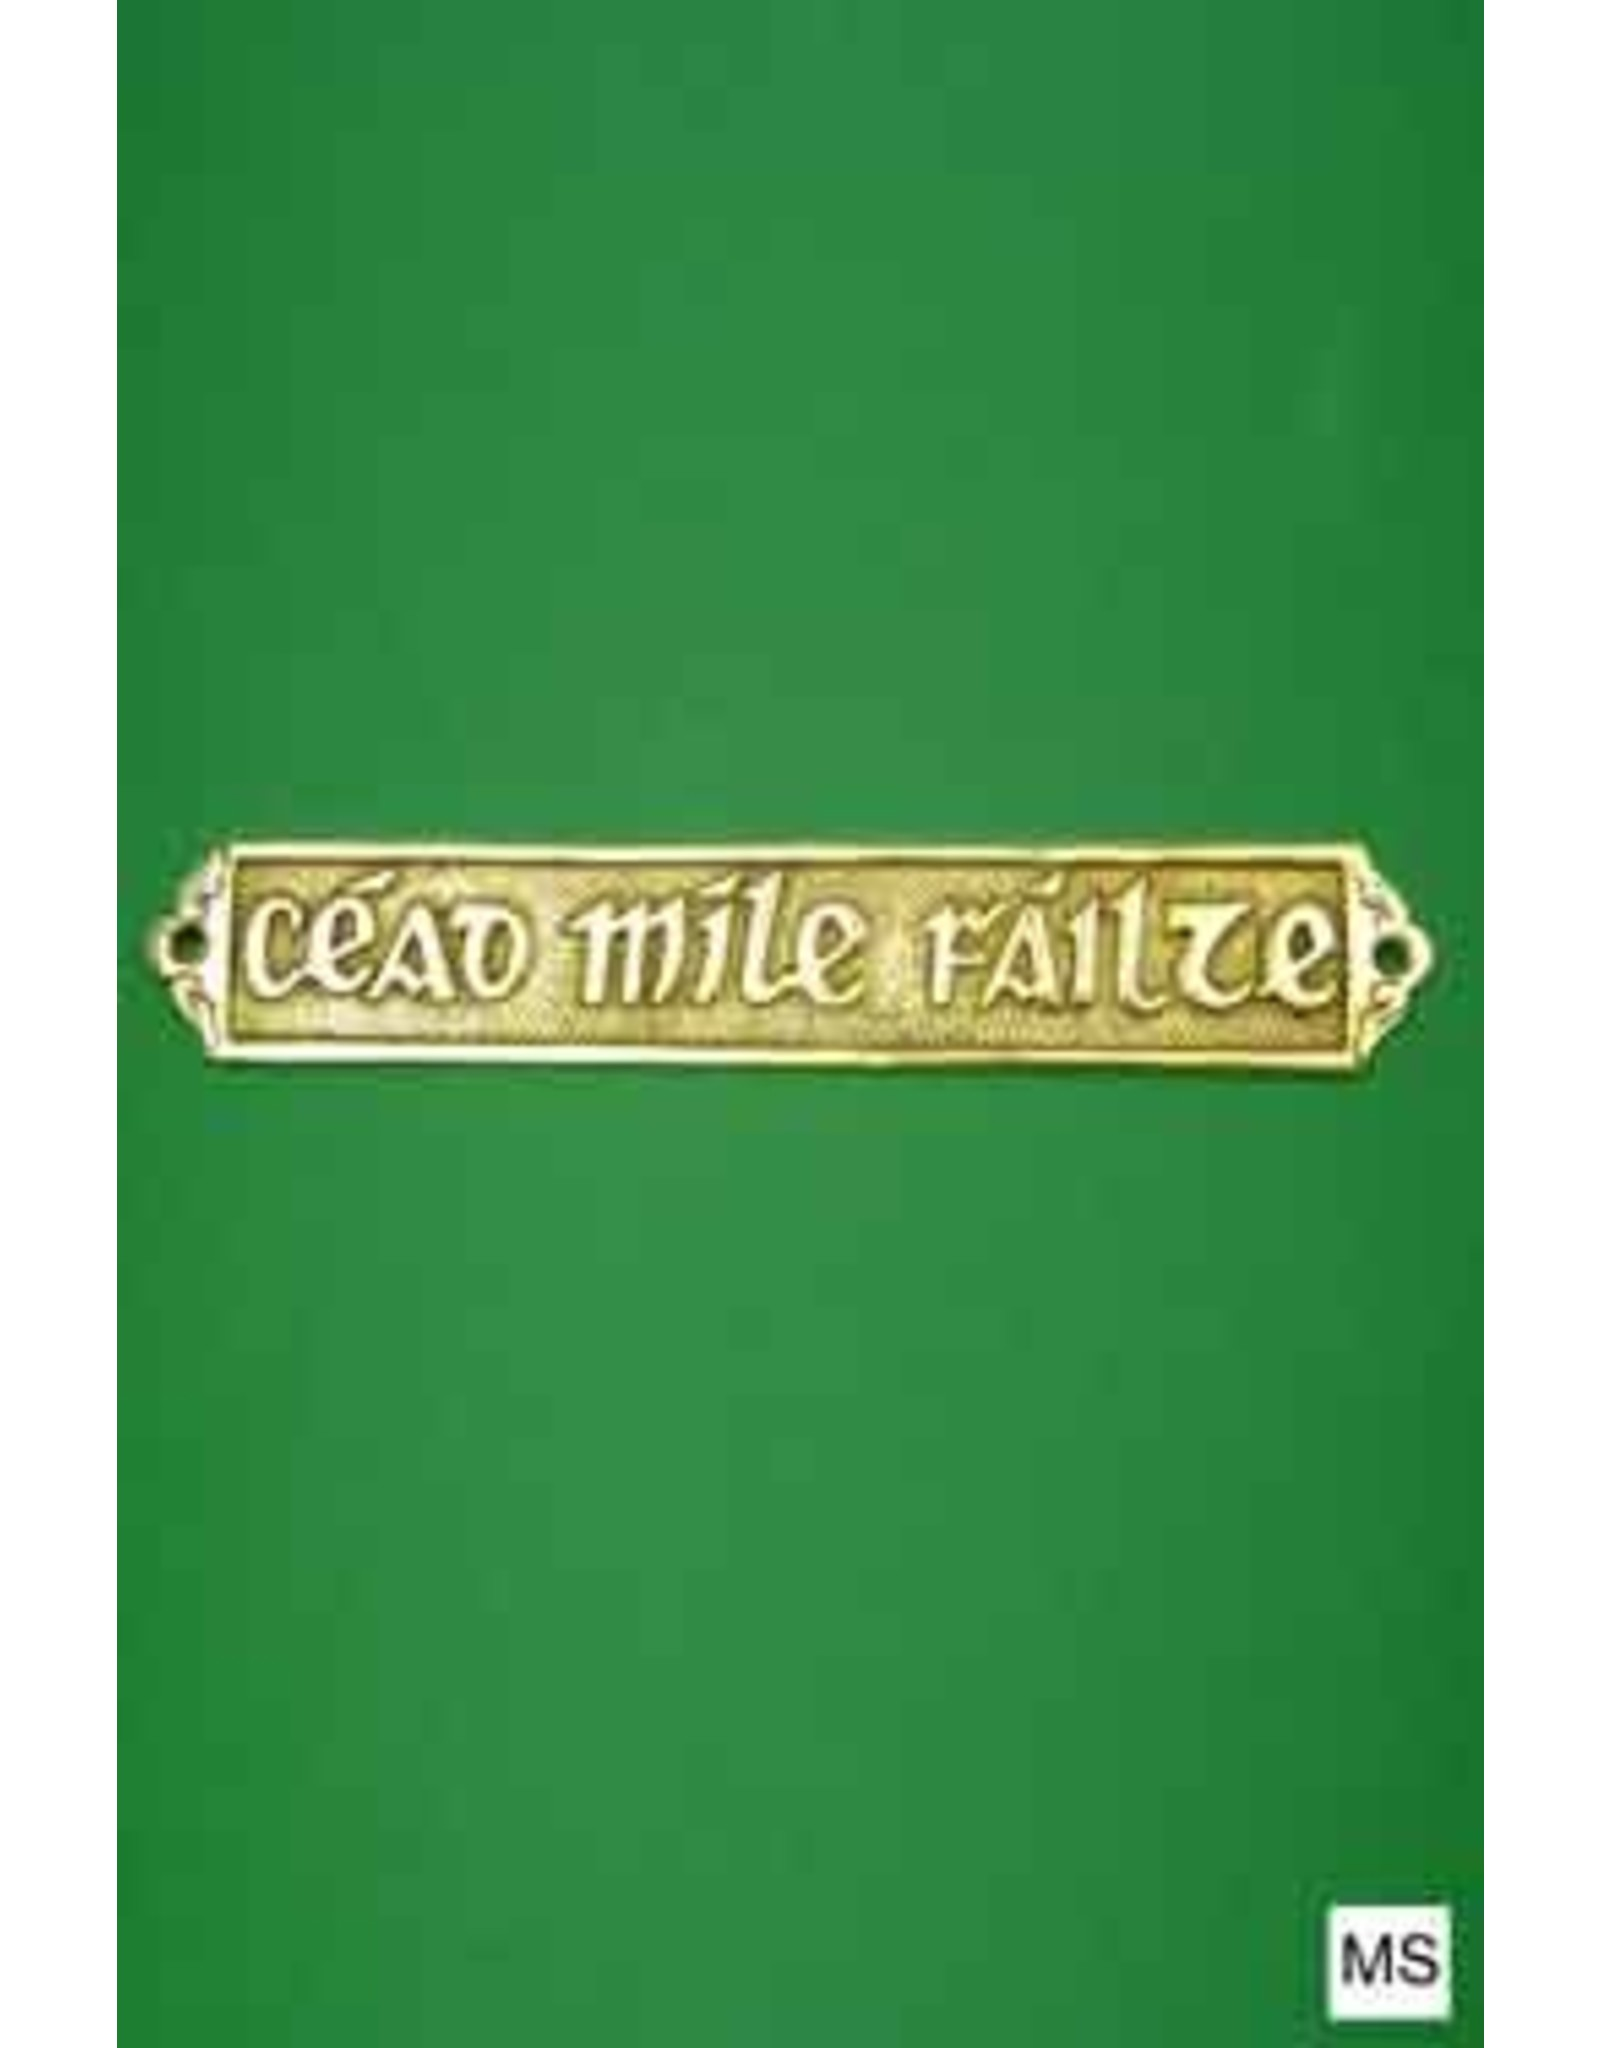 Liffey Artefacts Brass Cead Mile Failte Door Sign